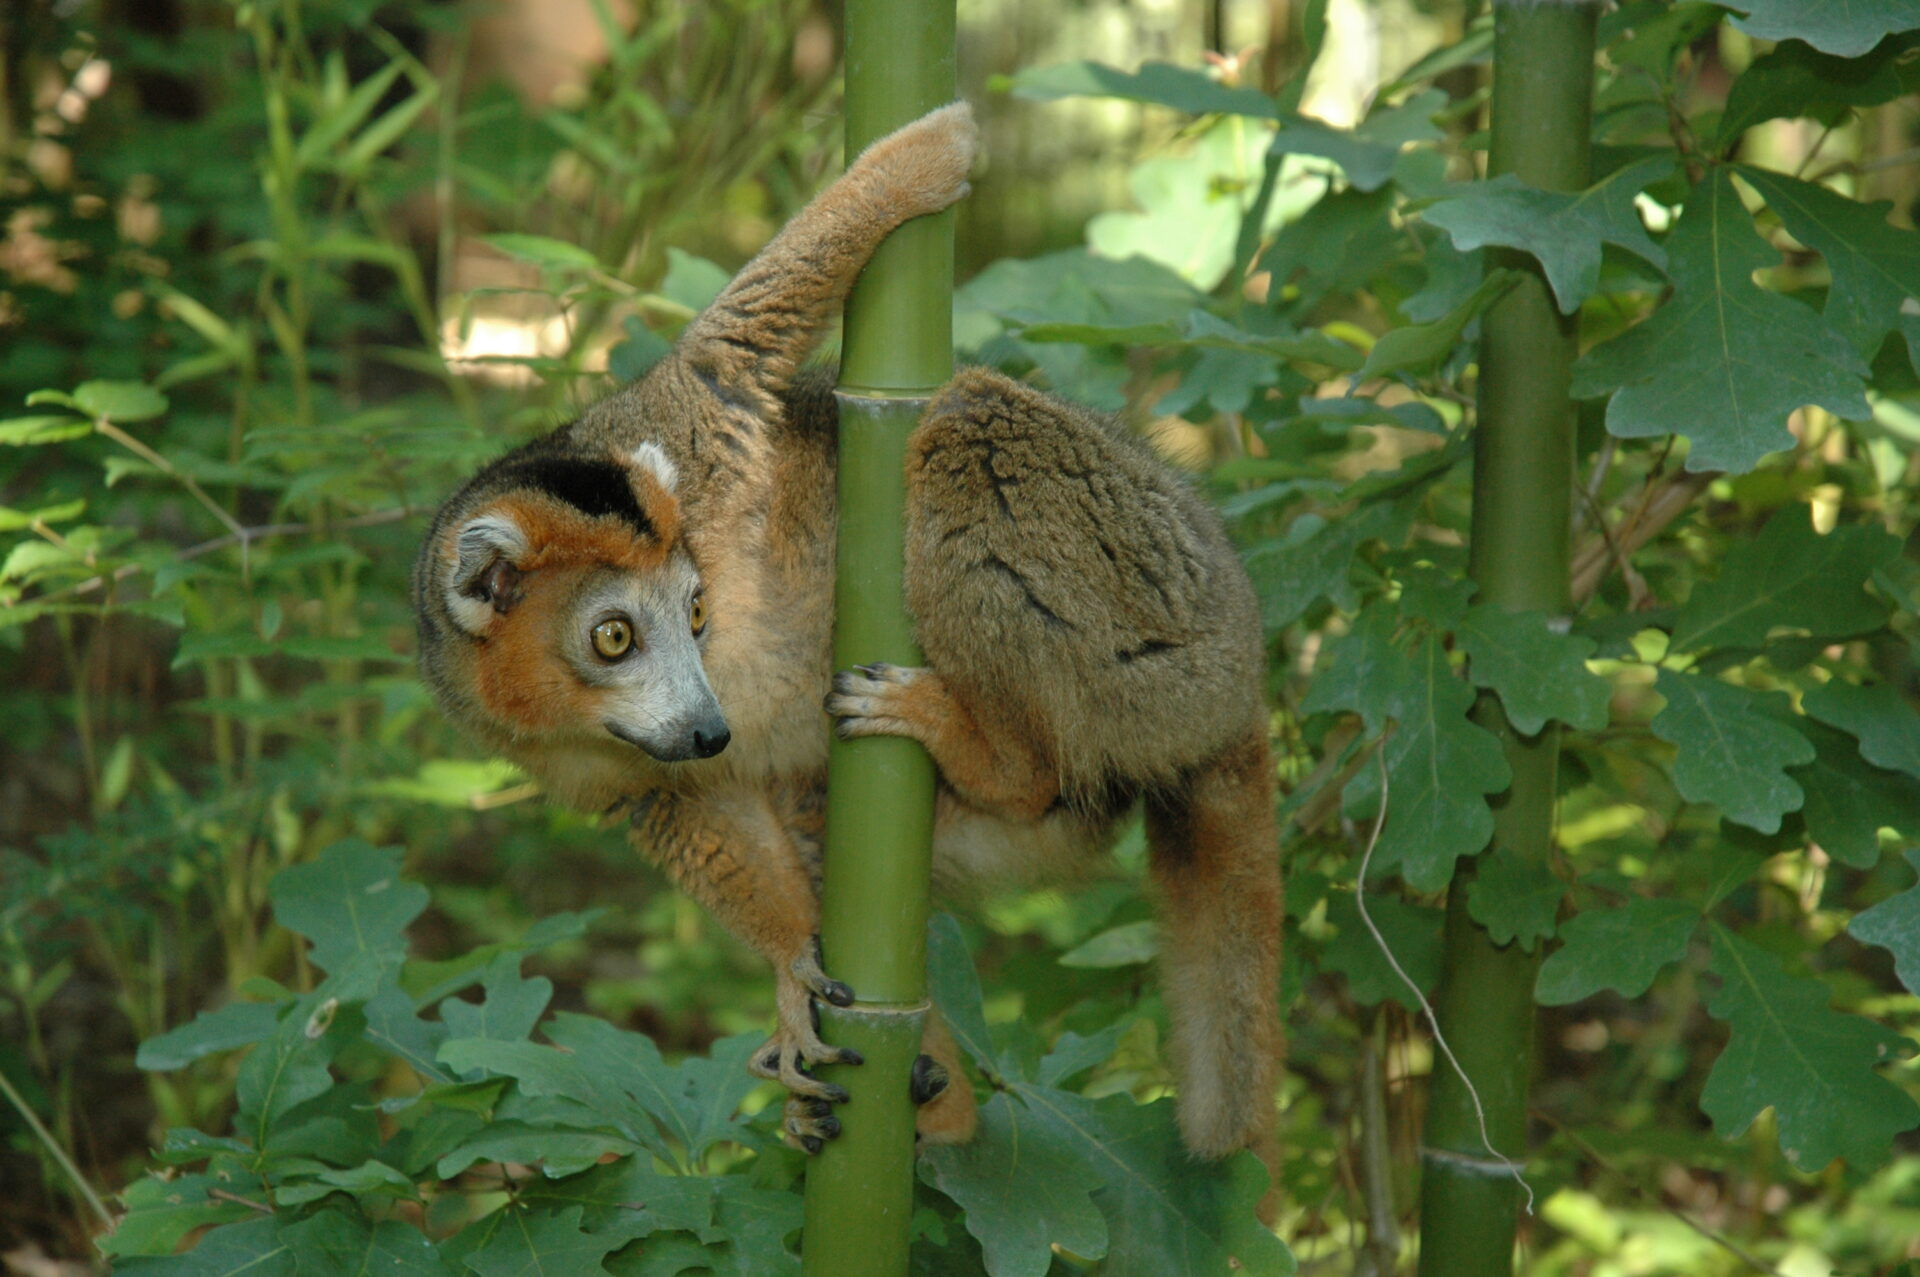 male crowned lemur free-ranging in bamboo – David Haring